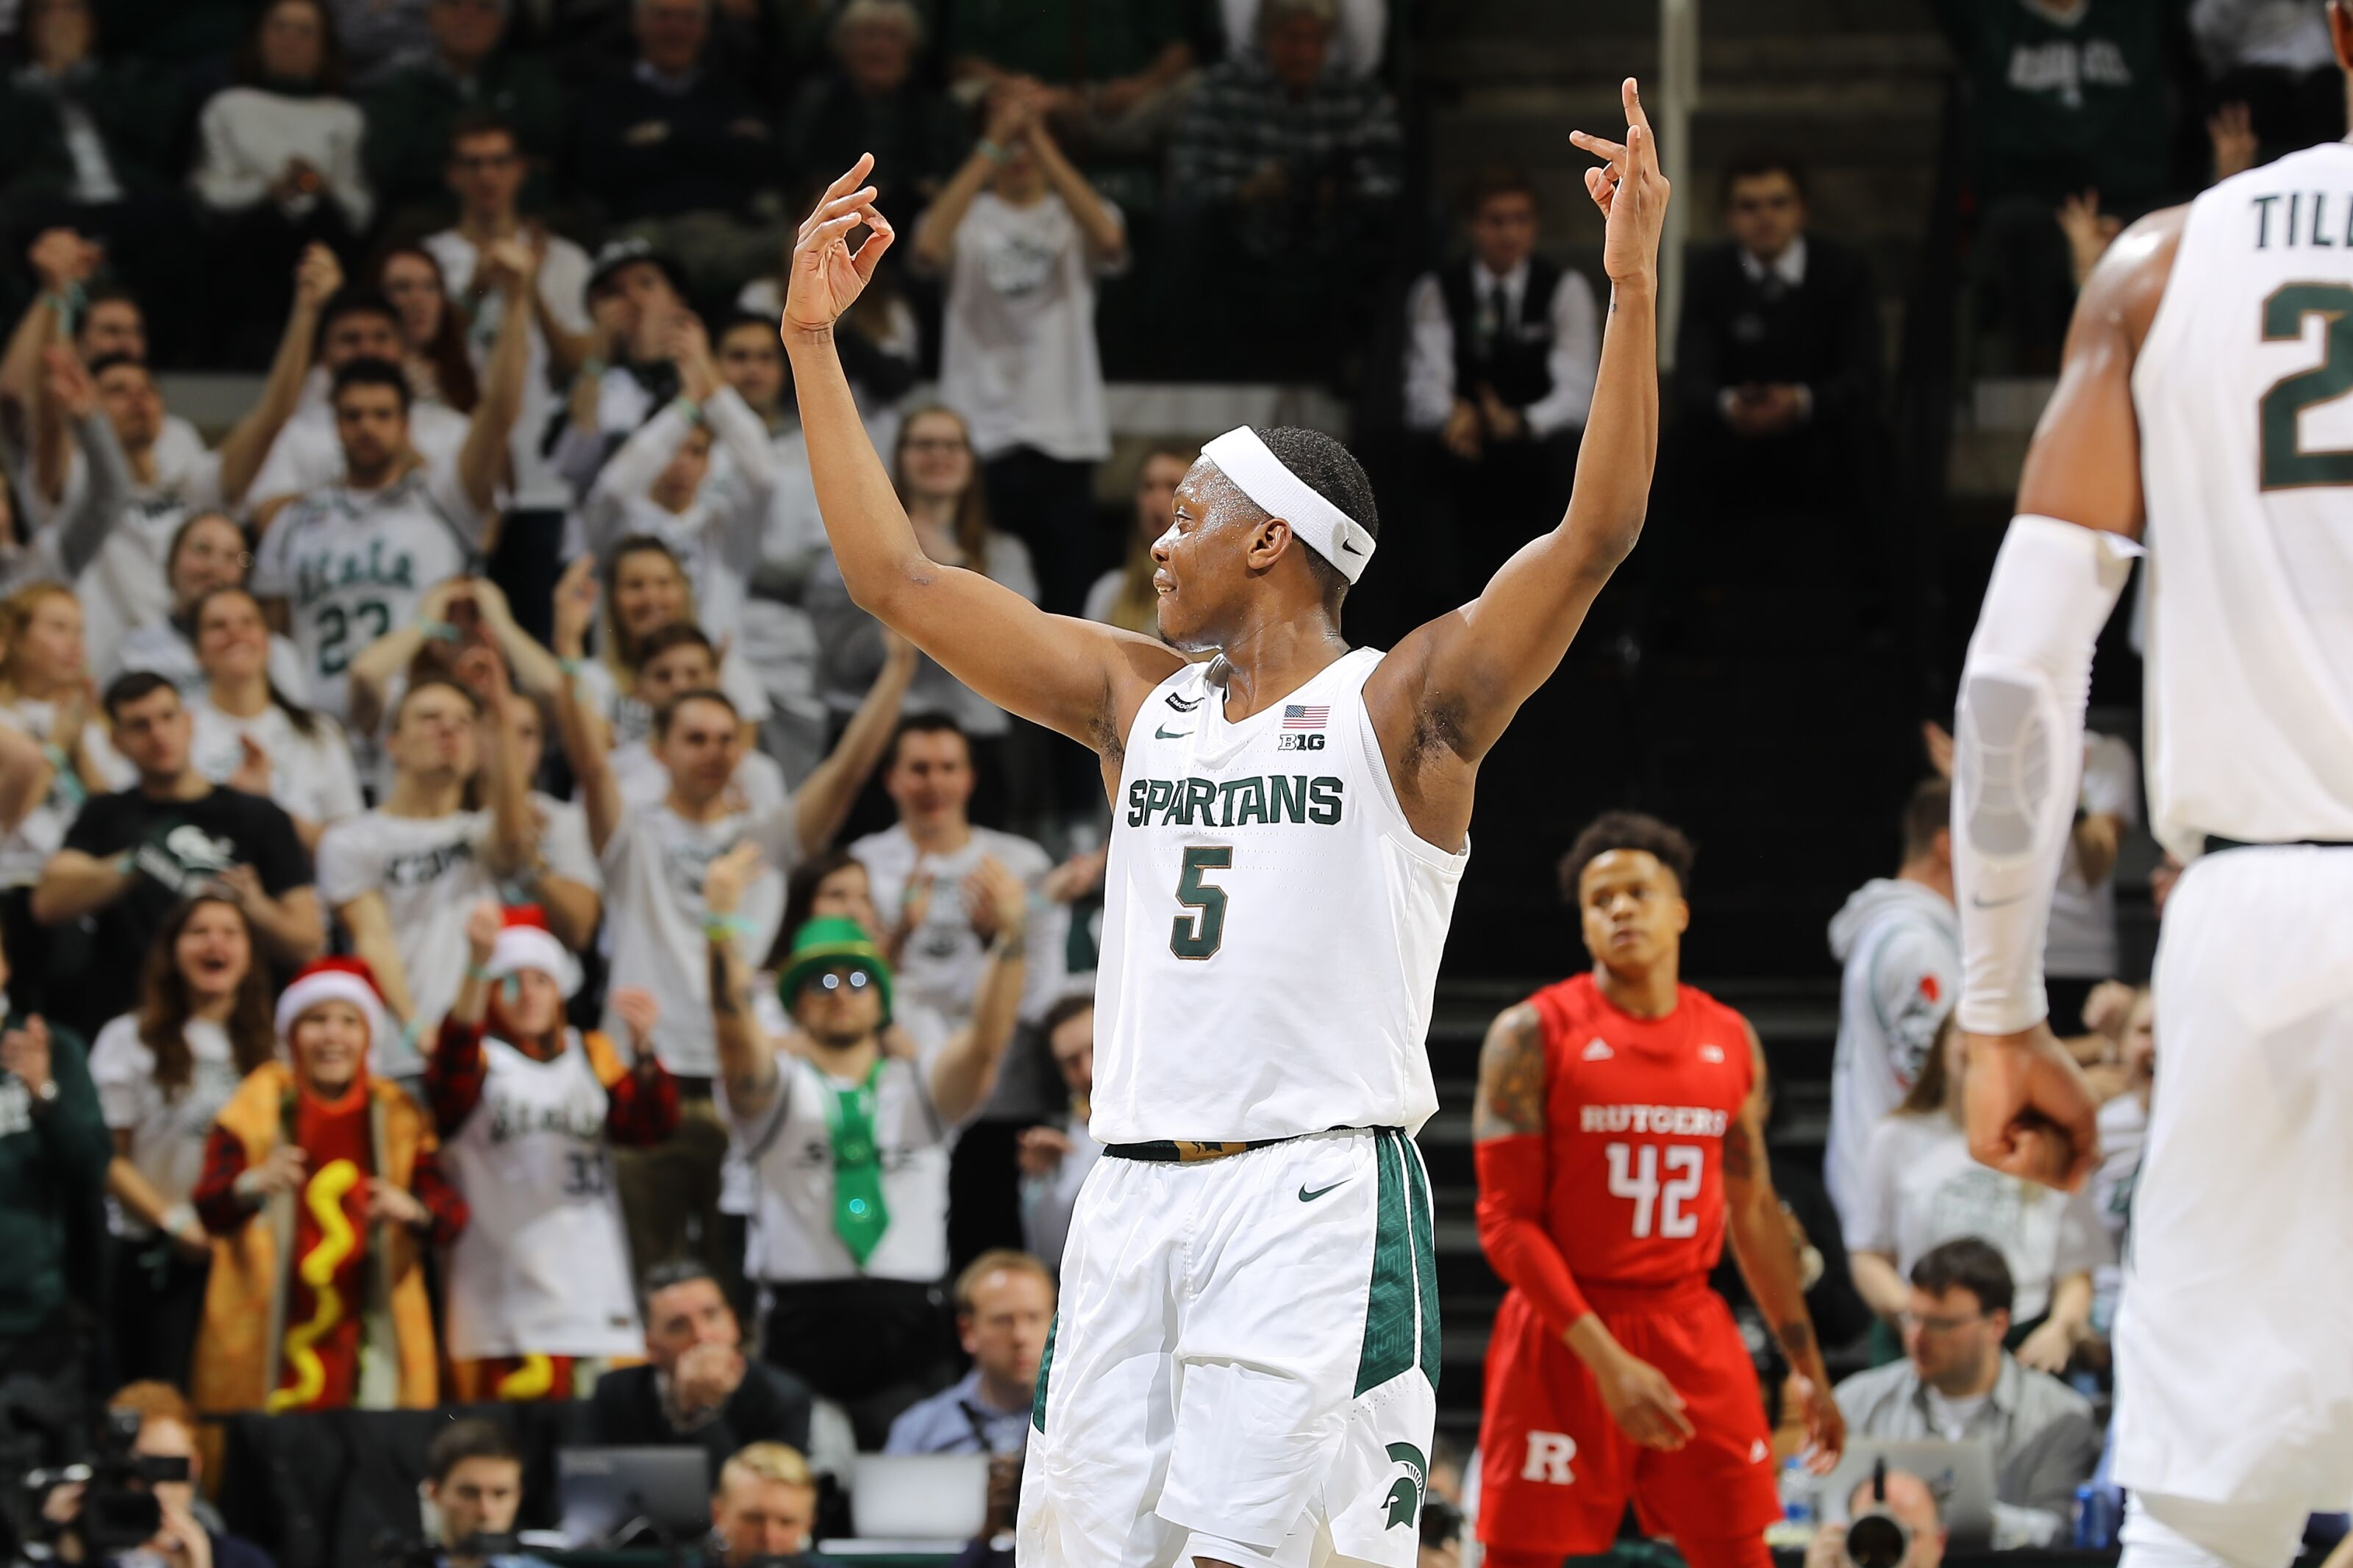 Michigan State Basketball: 3 bold predictions for crucial Oakland matchup